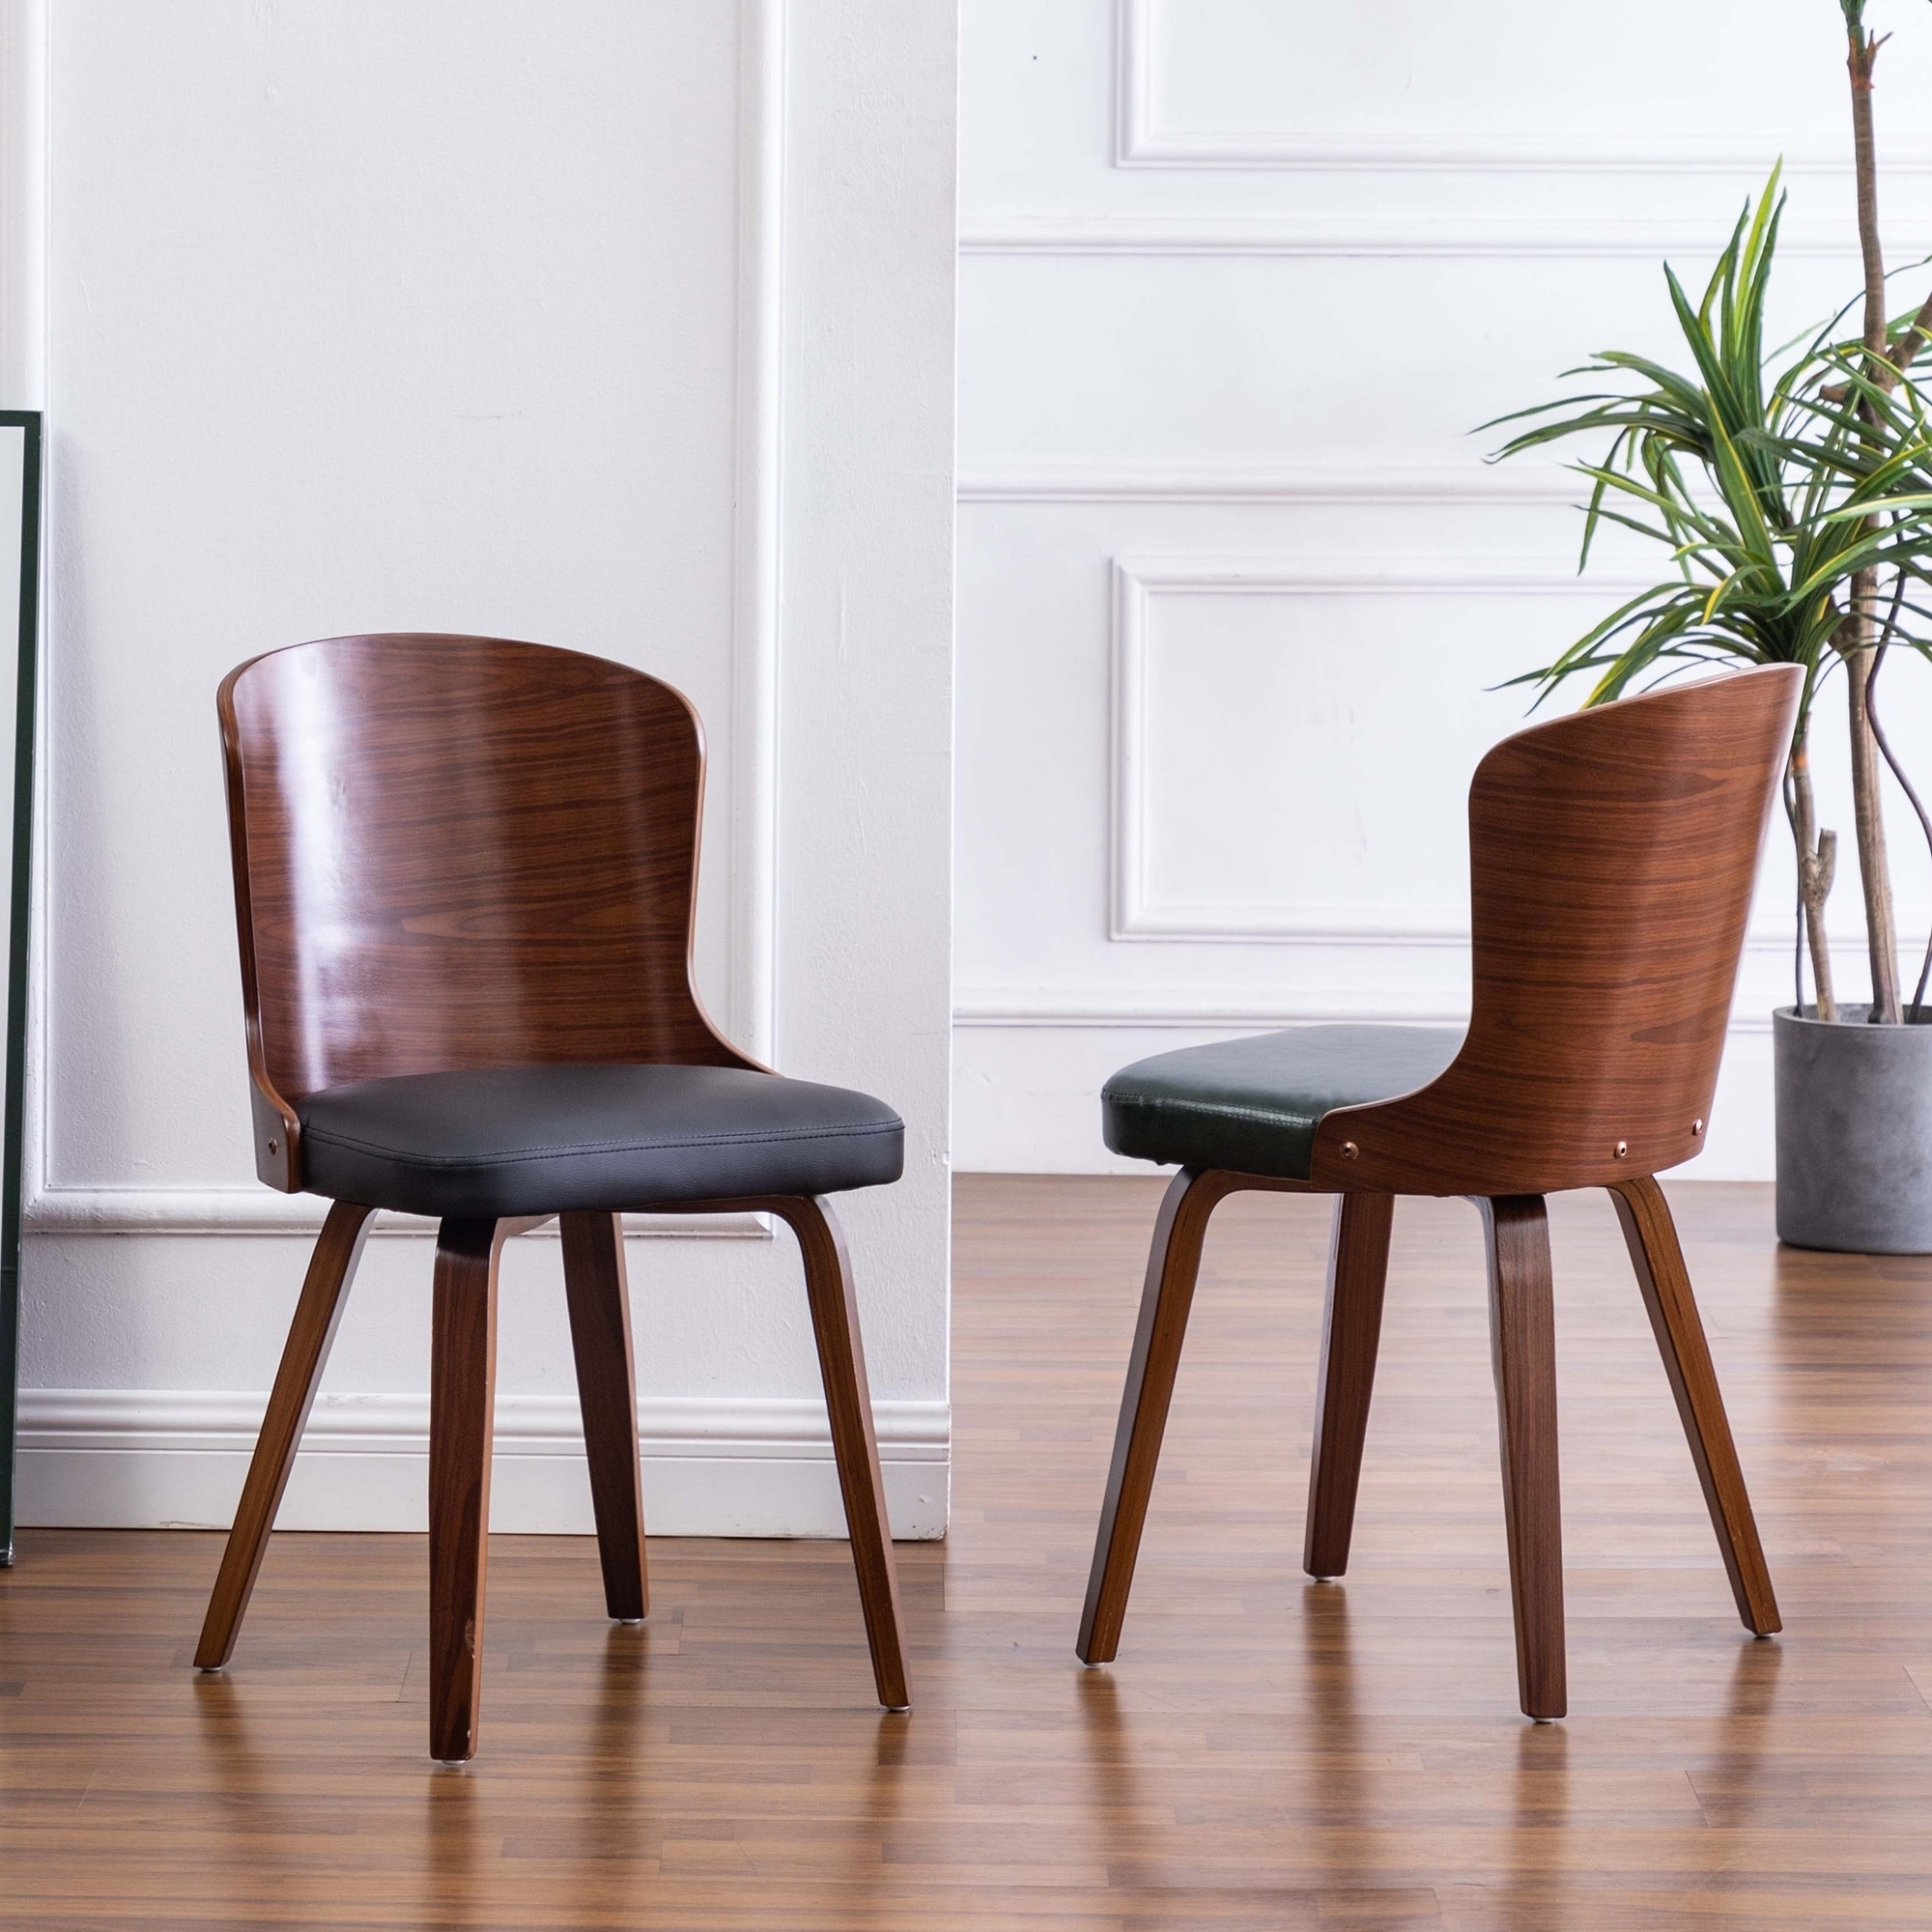 Punpa Curved Wood Dining Side Chair Pu Leather Padded Seats Set 2 On Sale Overstock 30560520